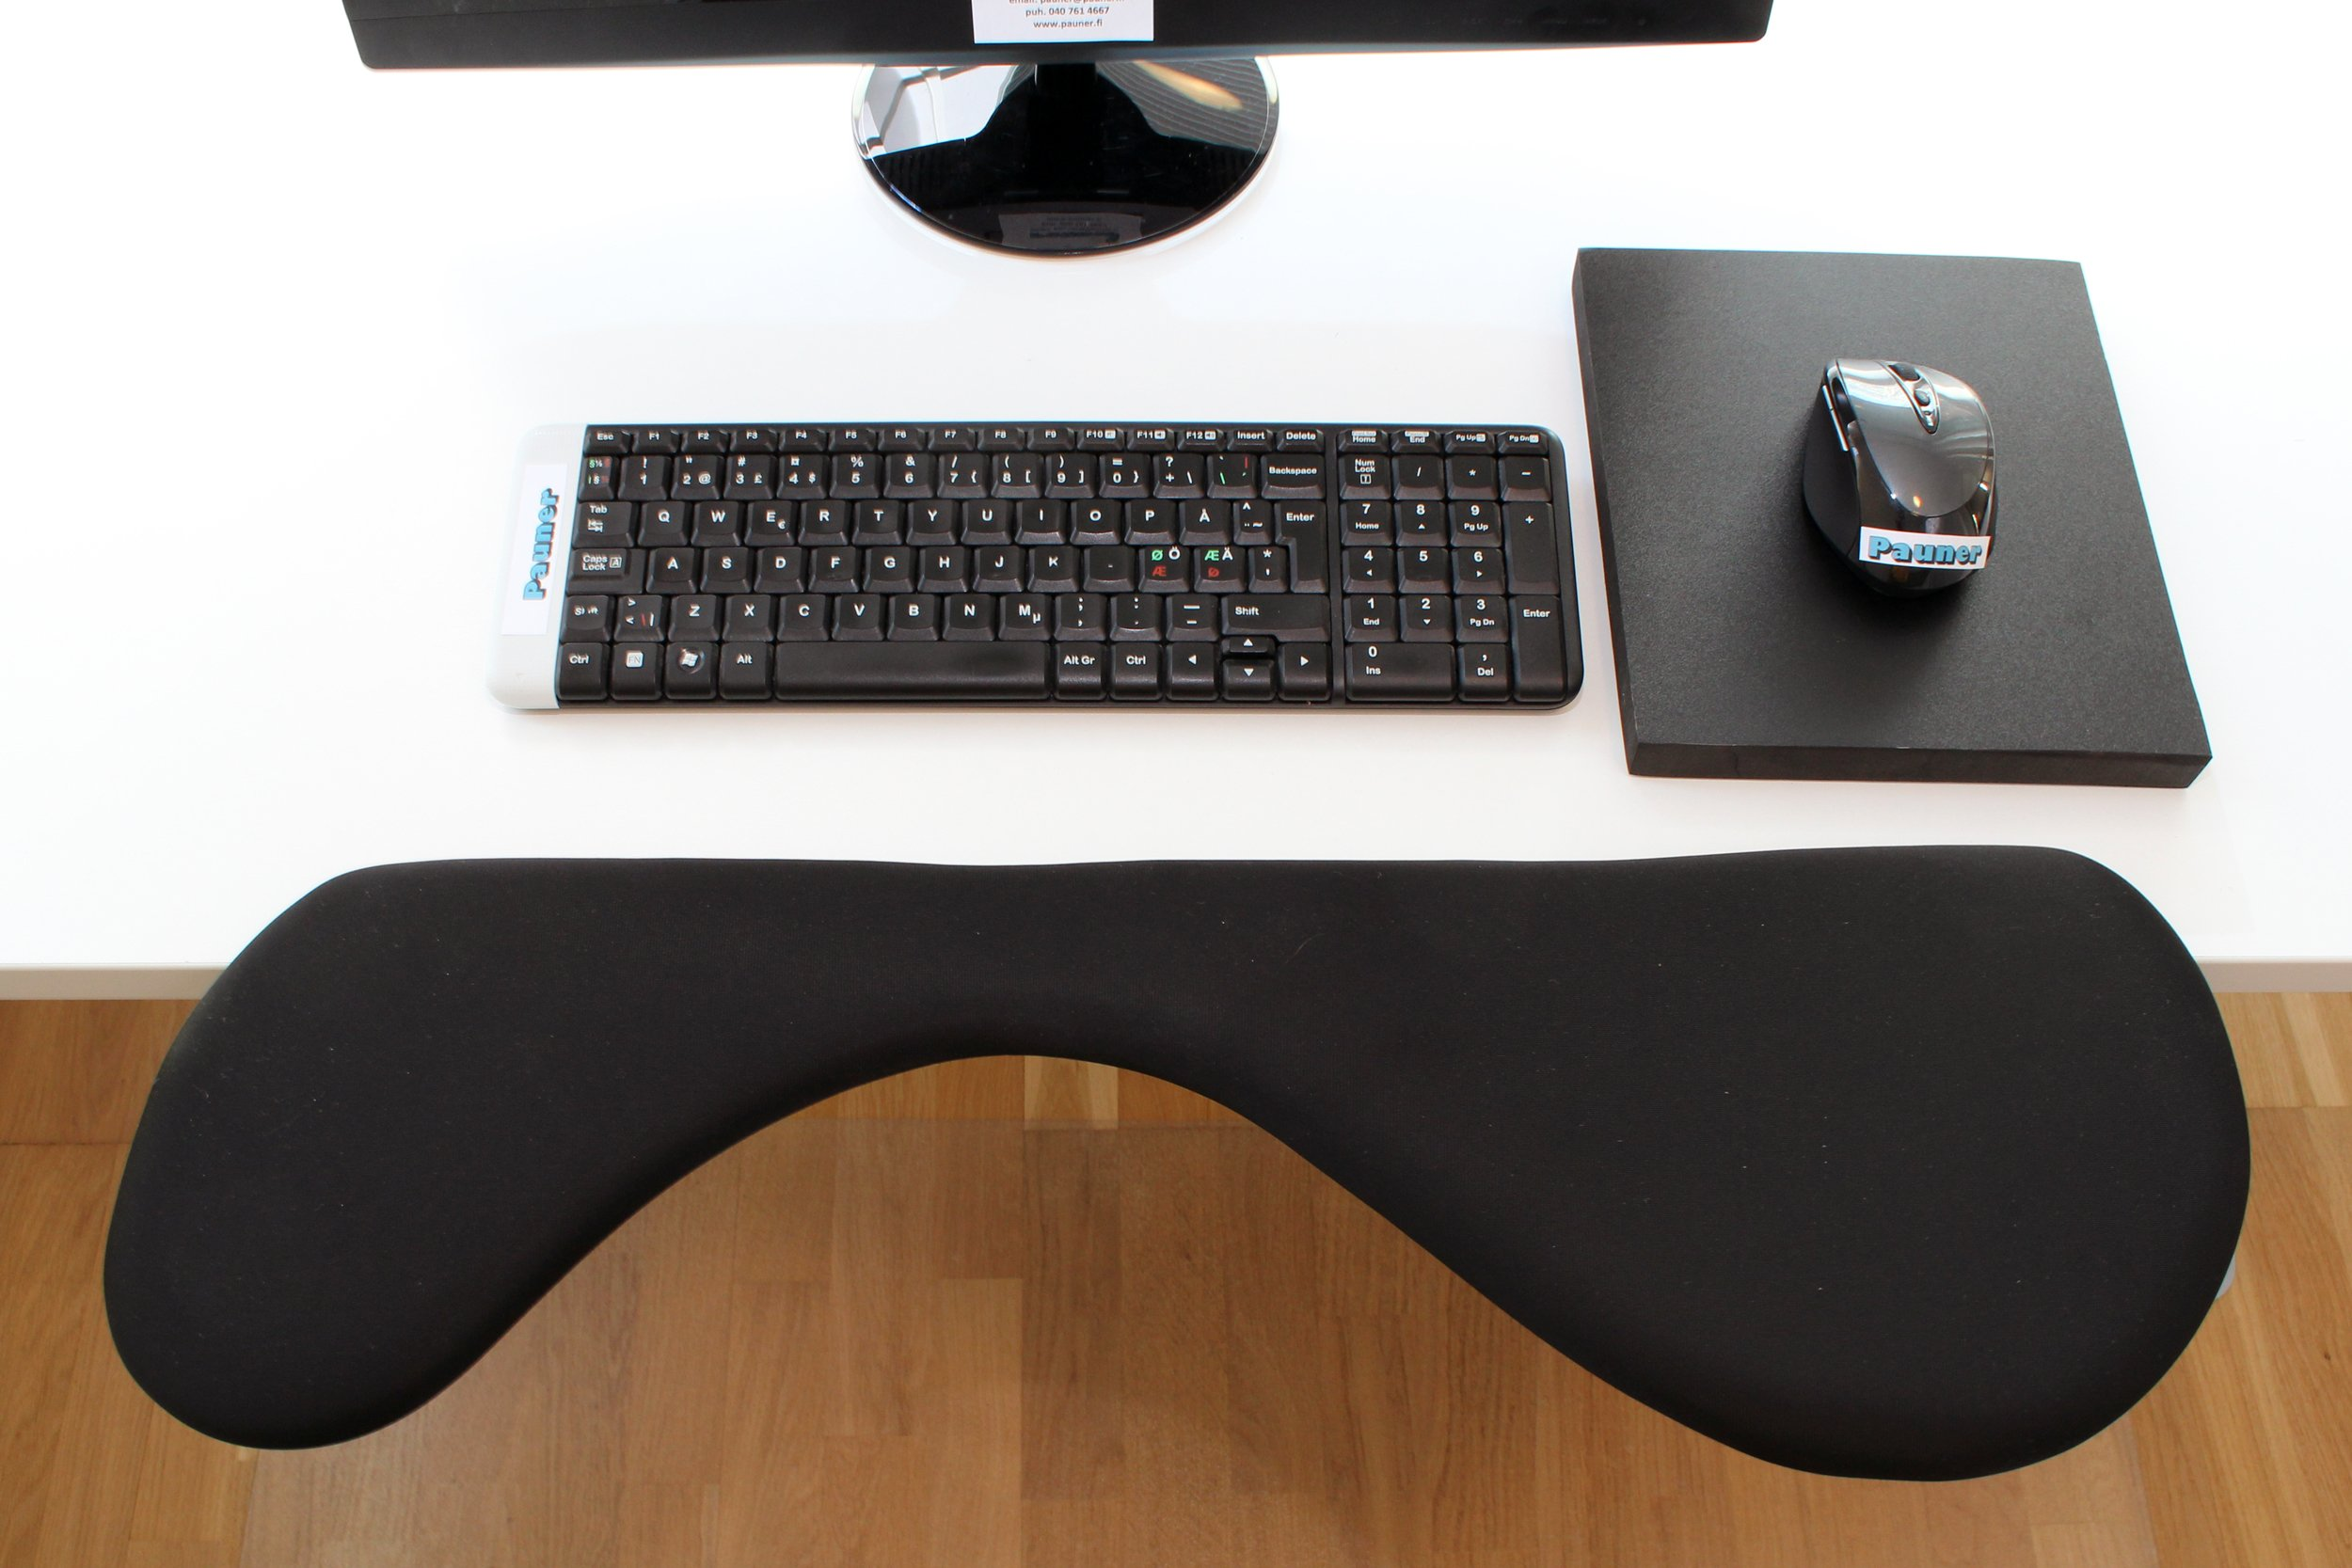 Pauner Forearm Support Better Than Normal Keyboard Wrist Rest - Works Well with Ergonomic Mouse by Pauner